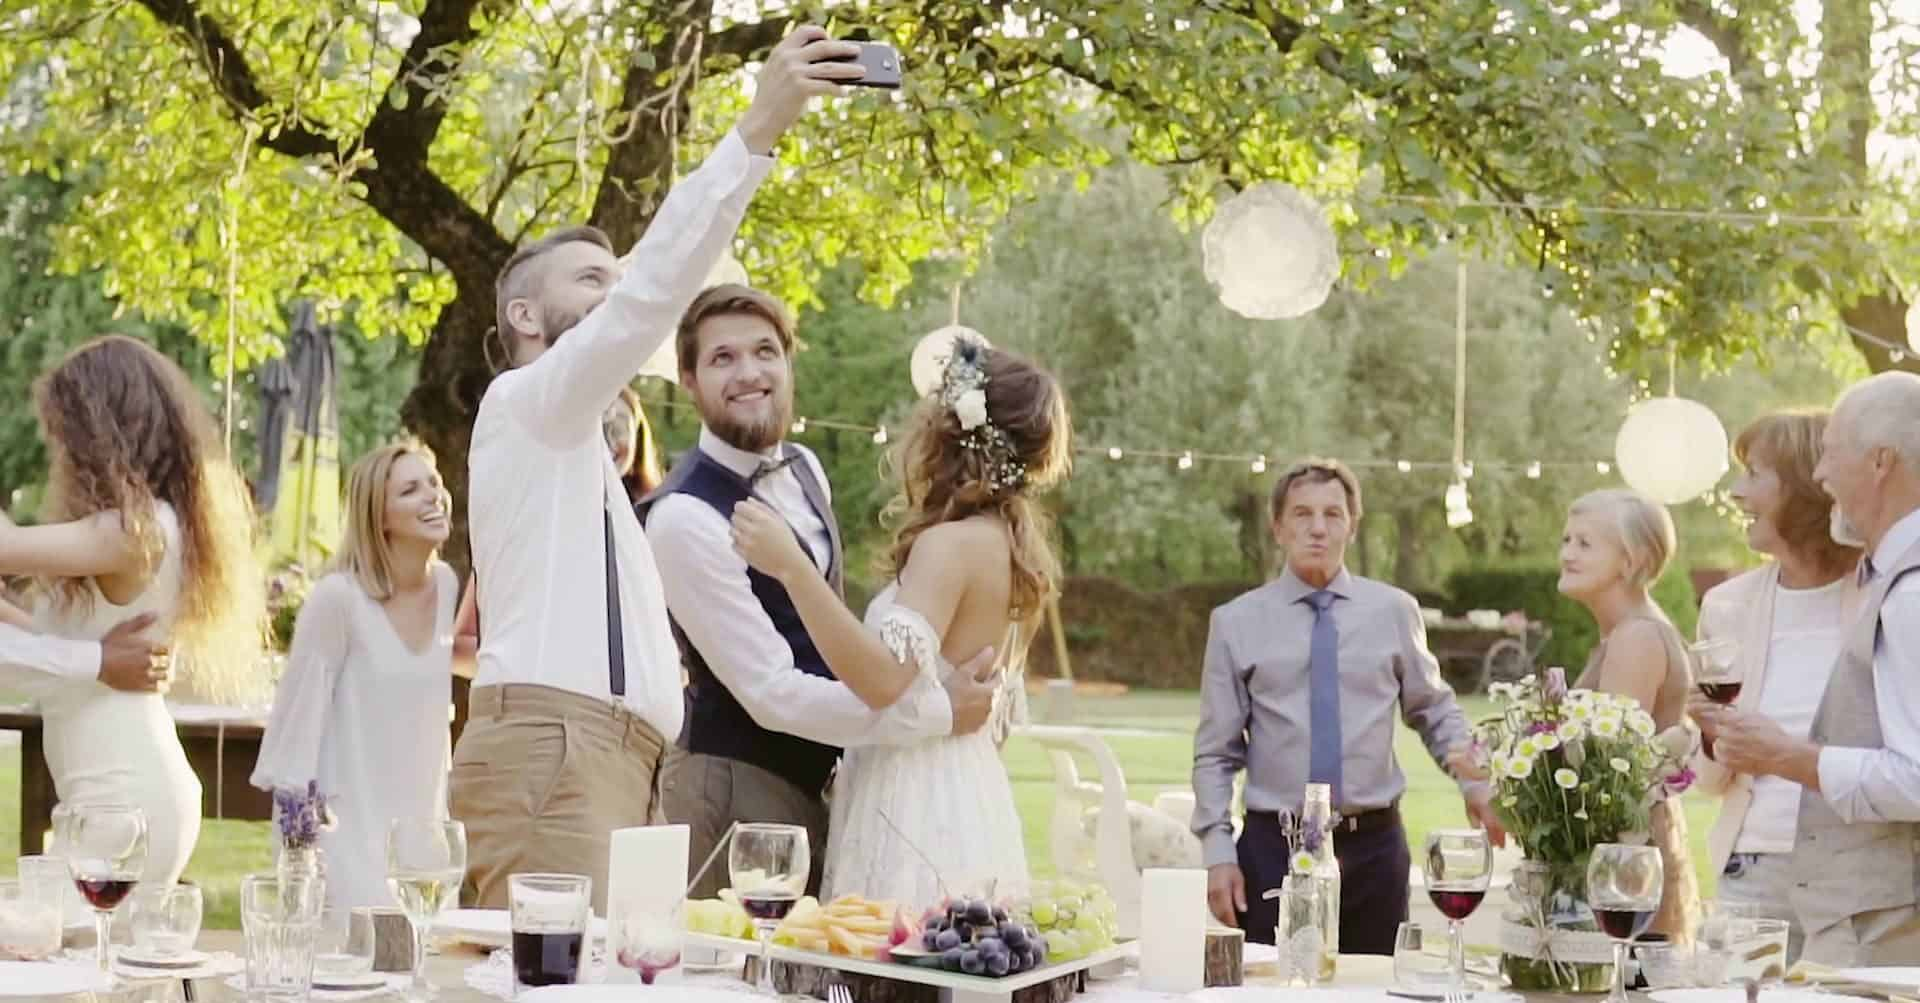 wedding party in the park